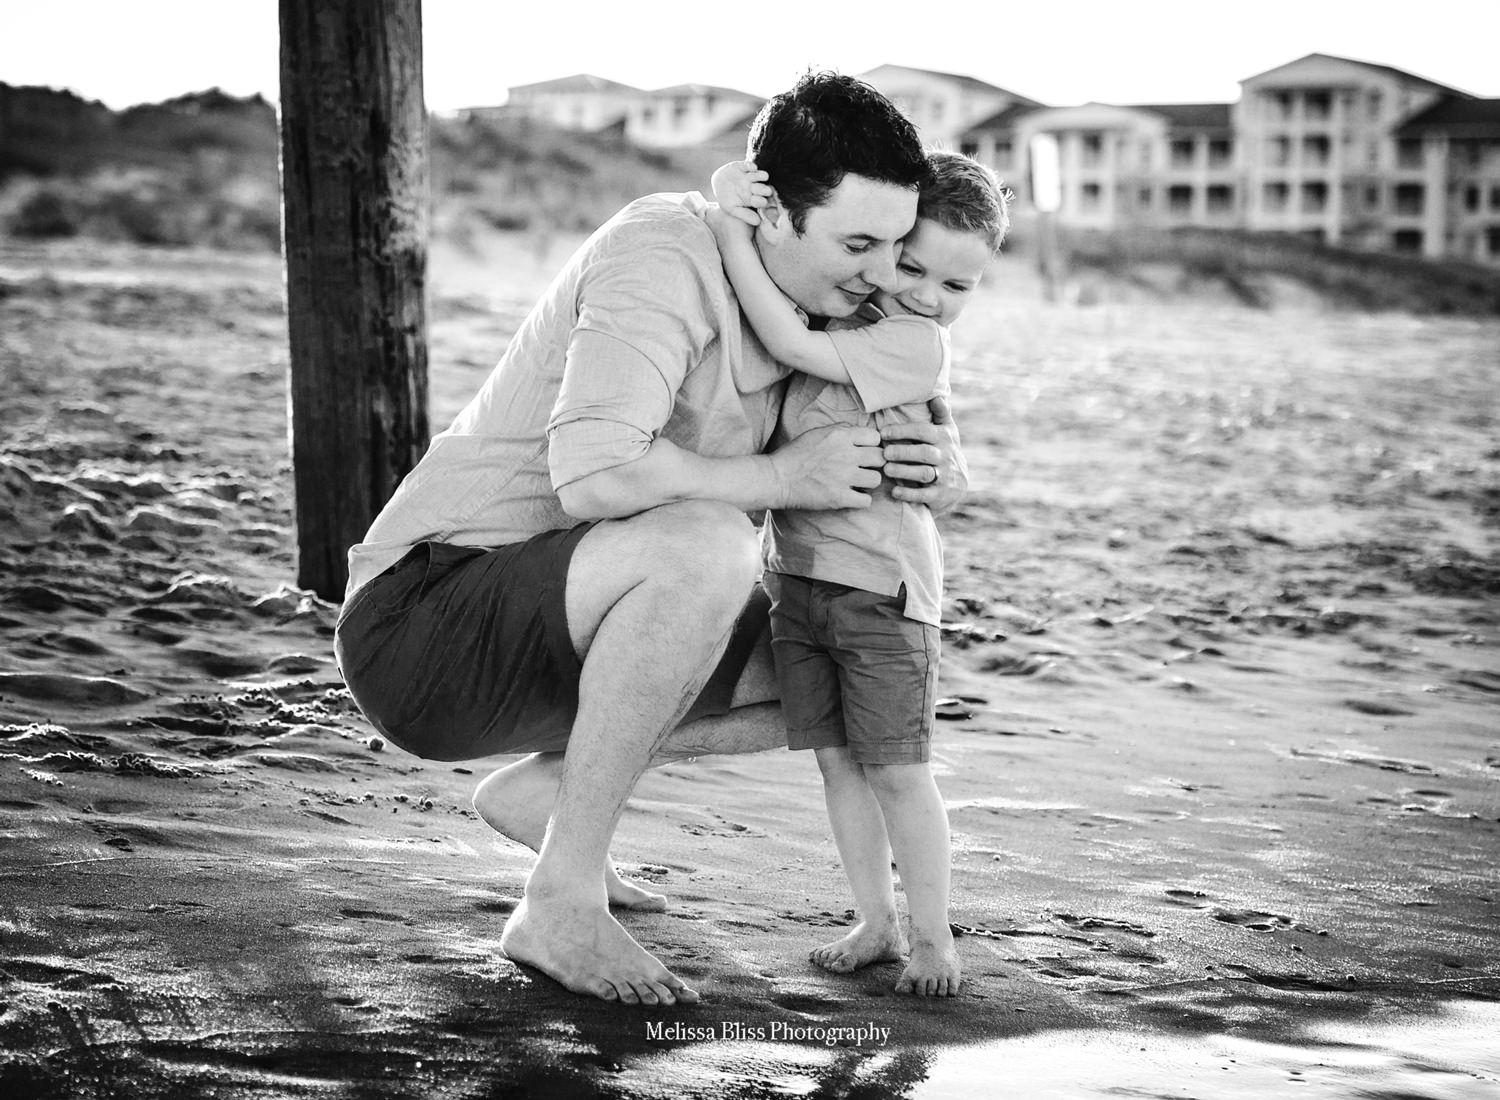 sandbridge-beach-father-son-photo-melissa-bliss-photography-virginia-beach-family-photographer.jpg